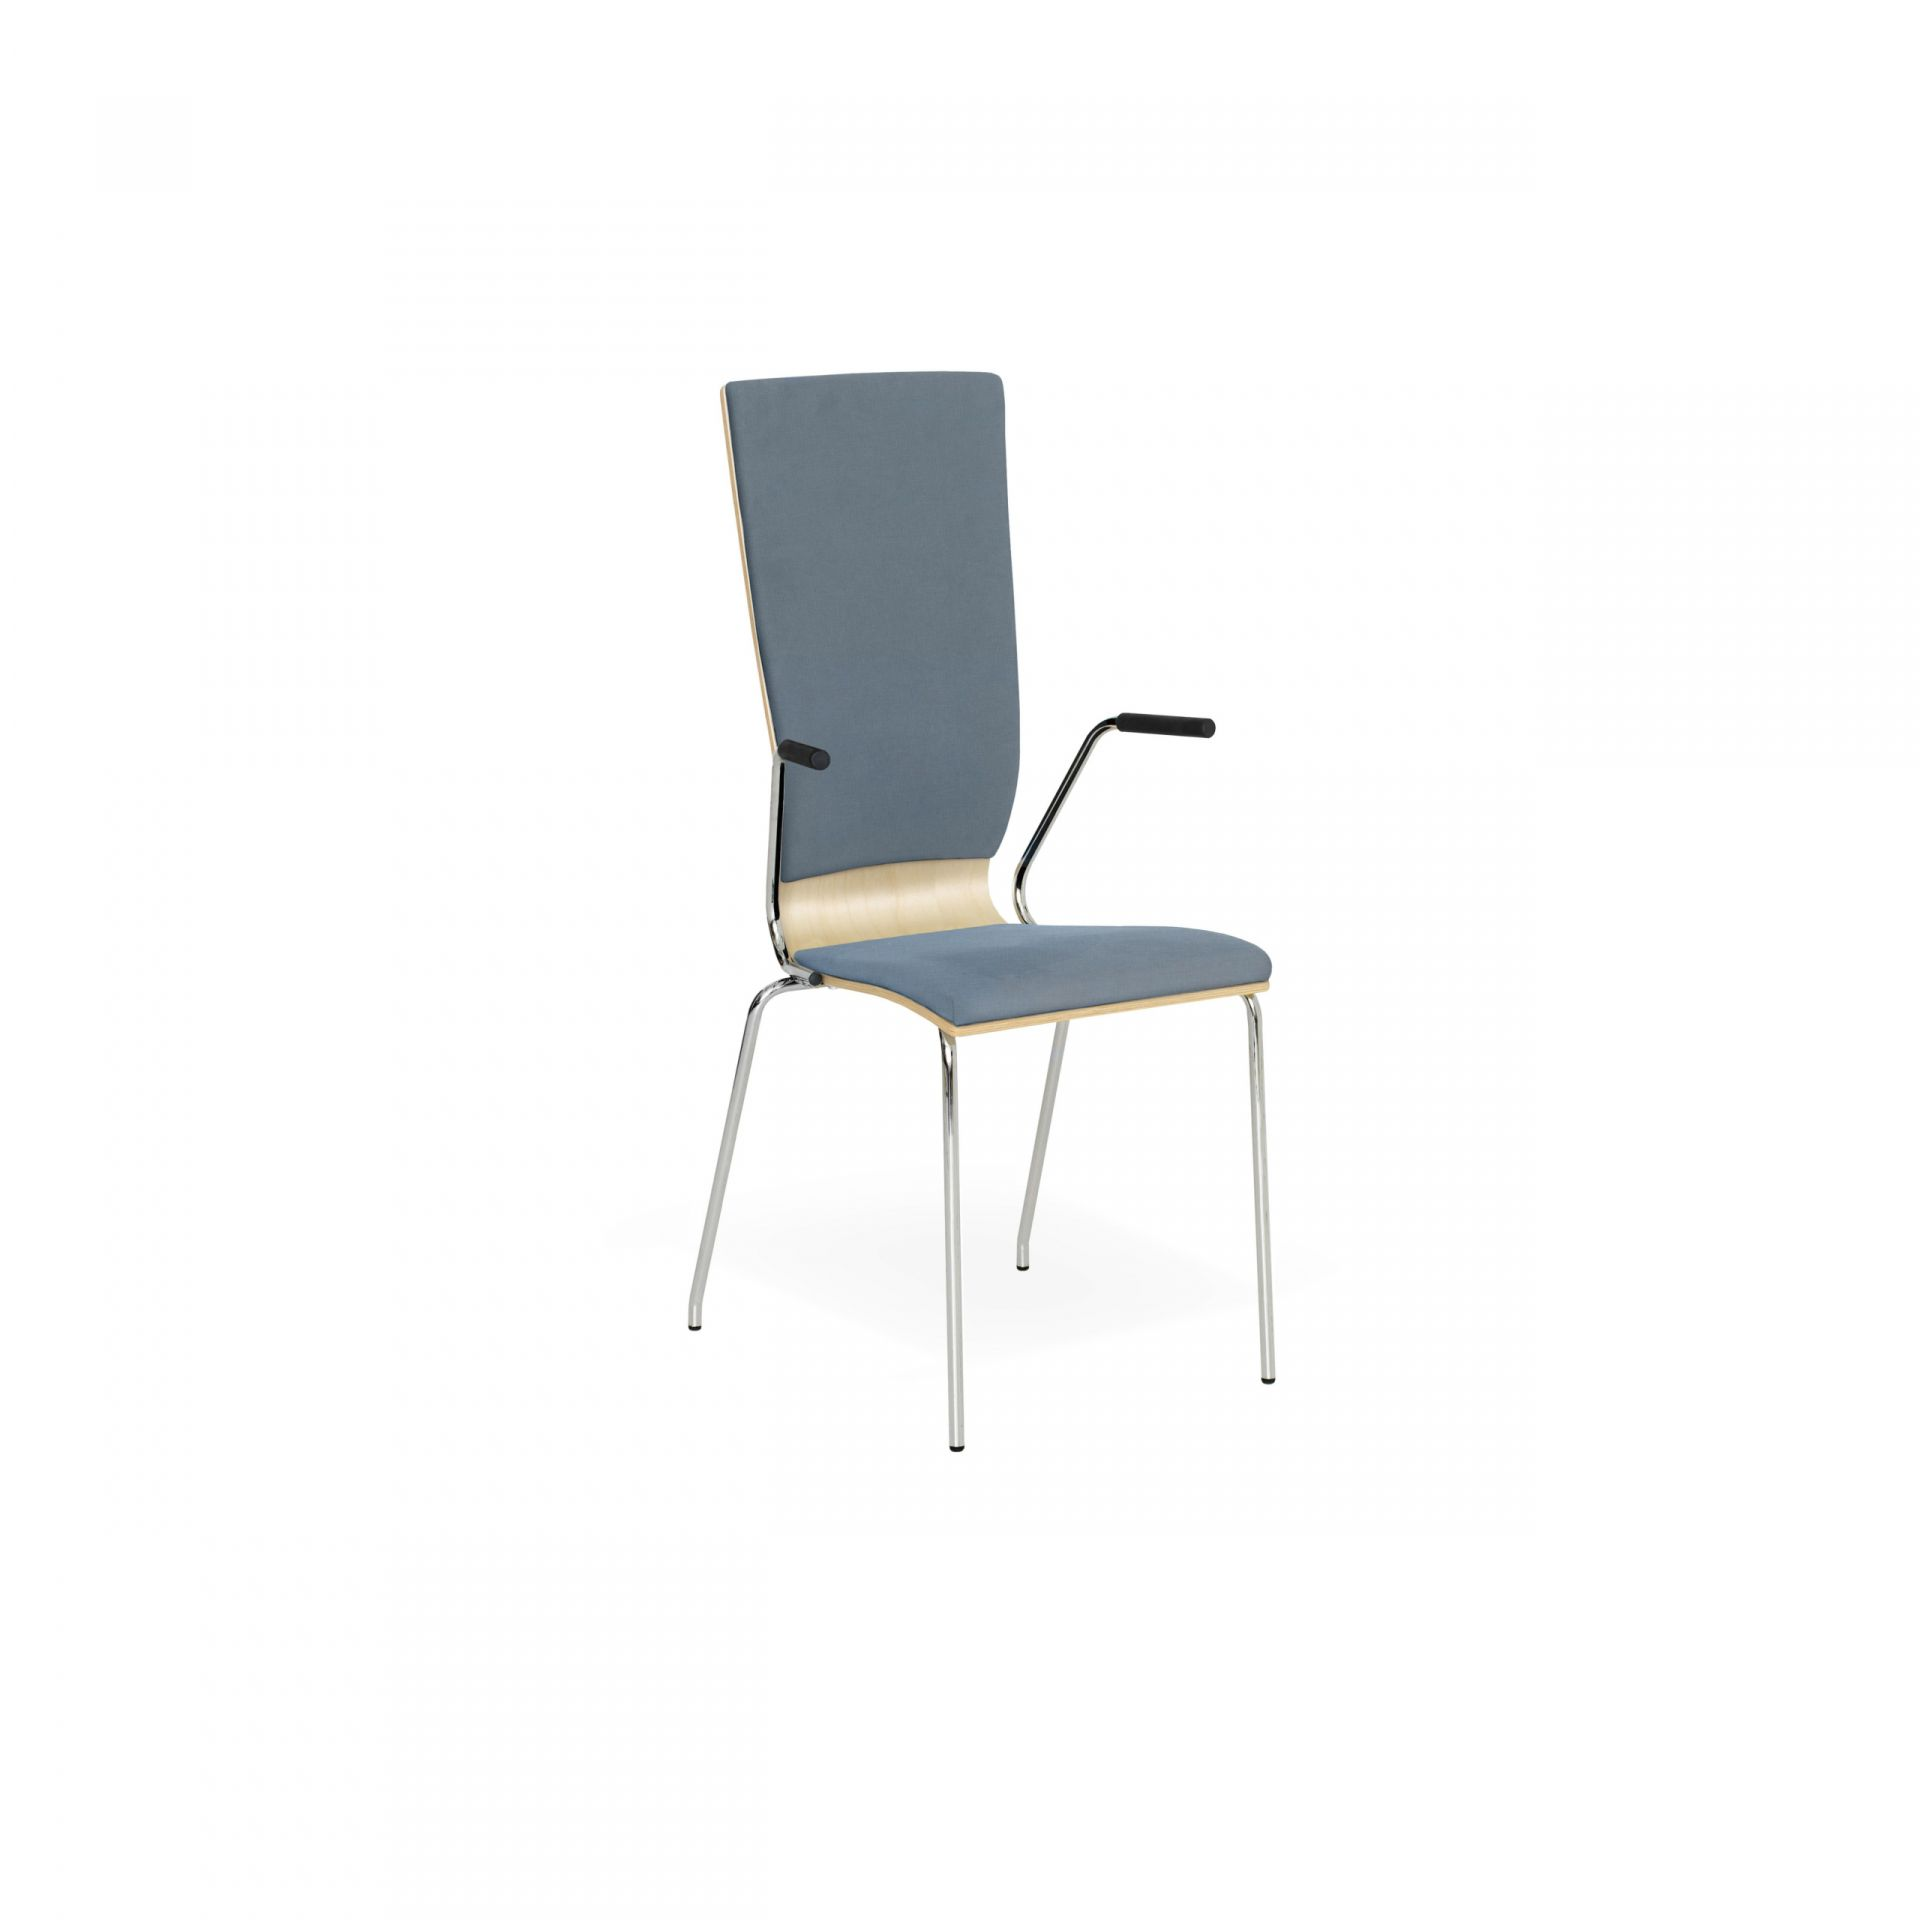 Graf Chair with metal legs product image 2